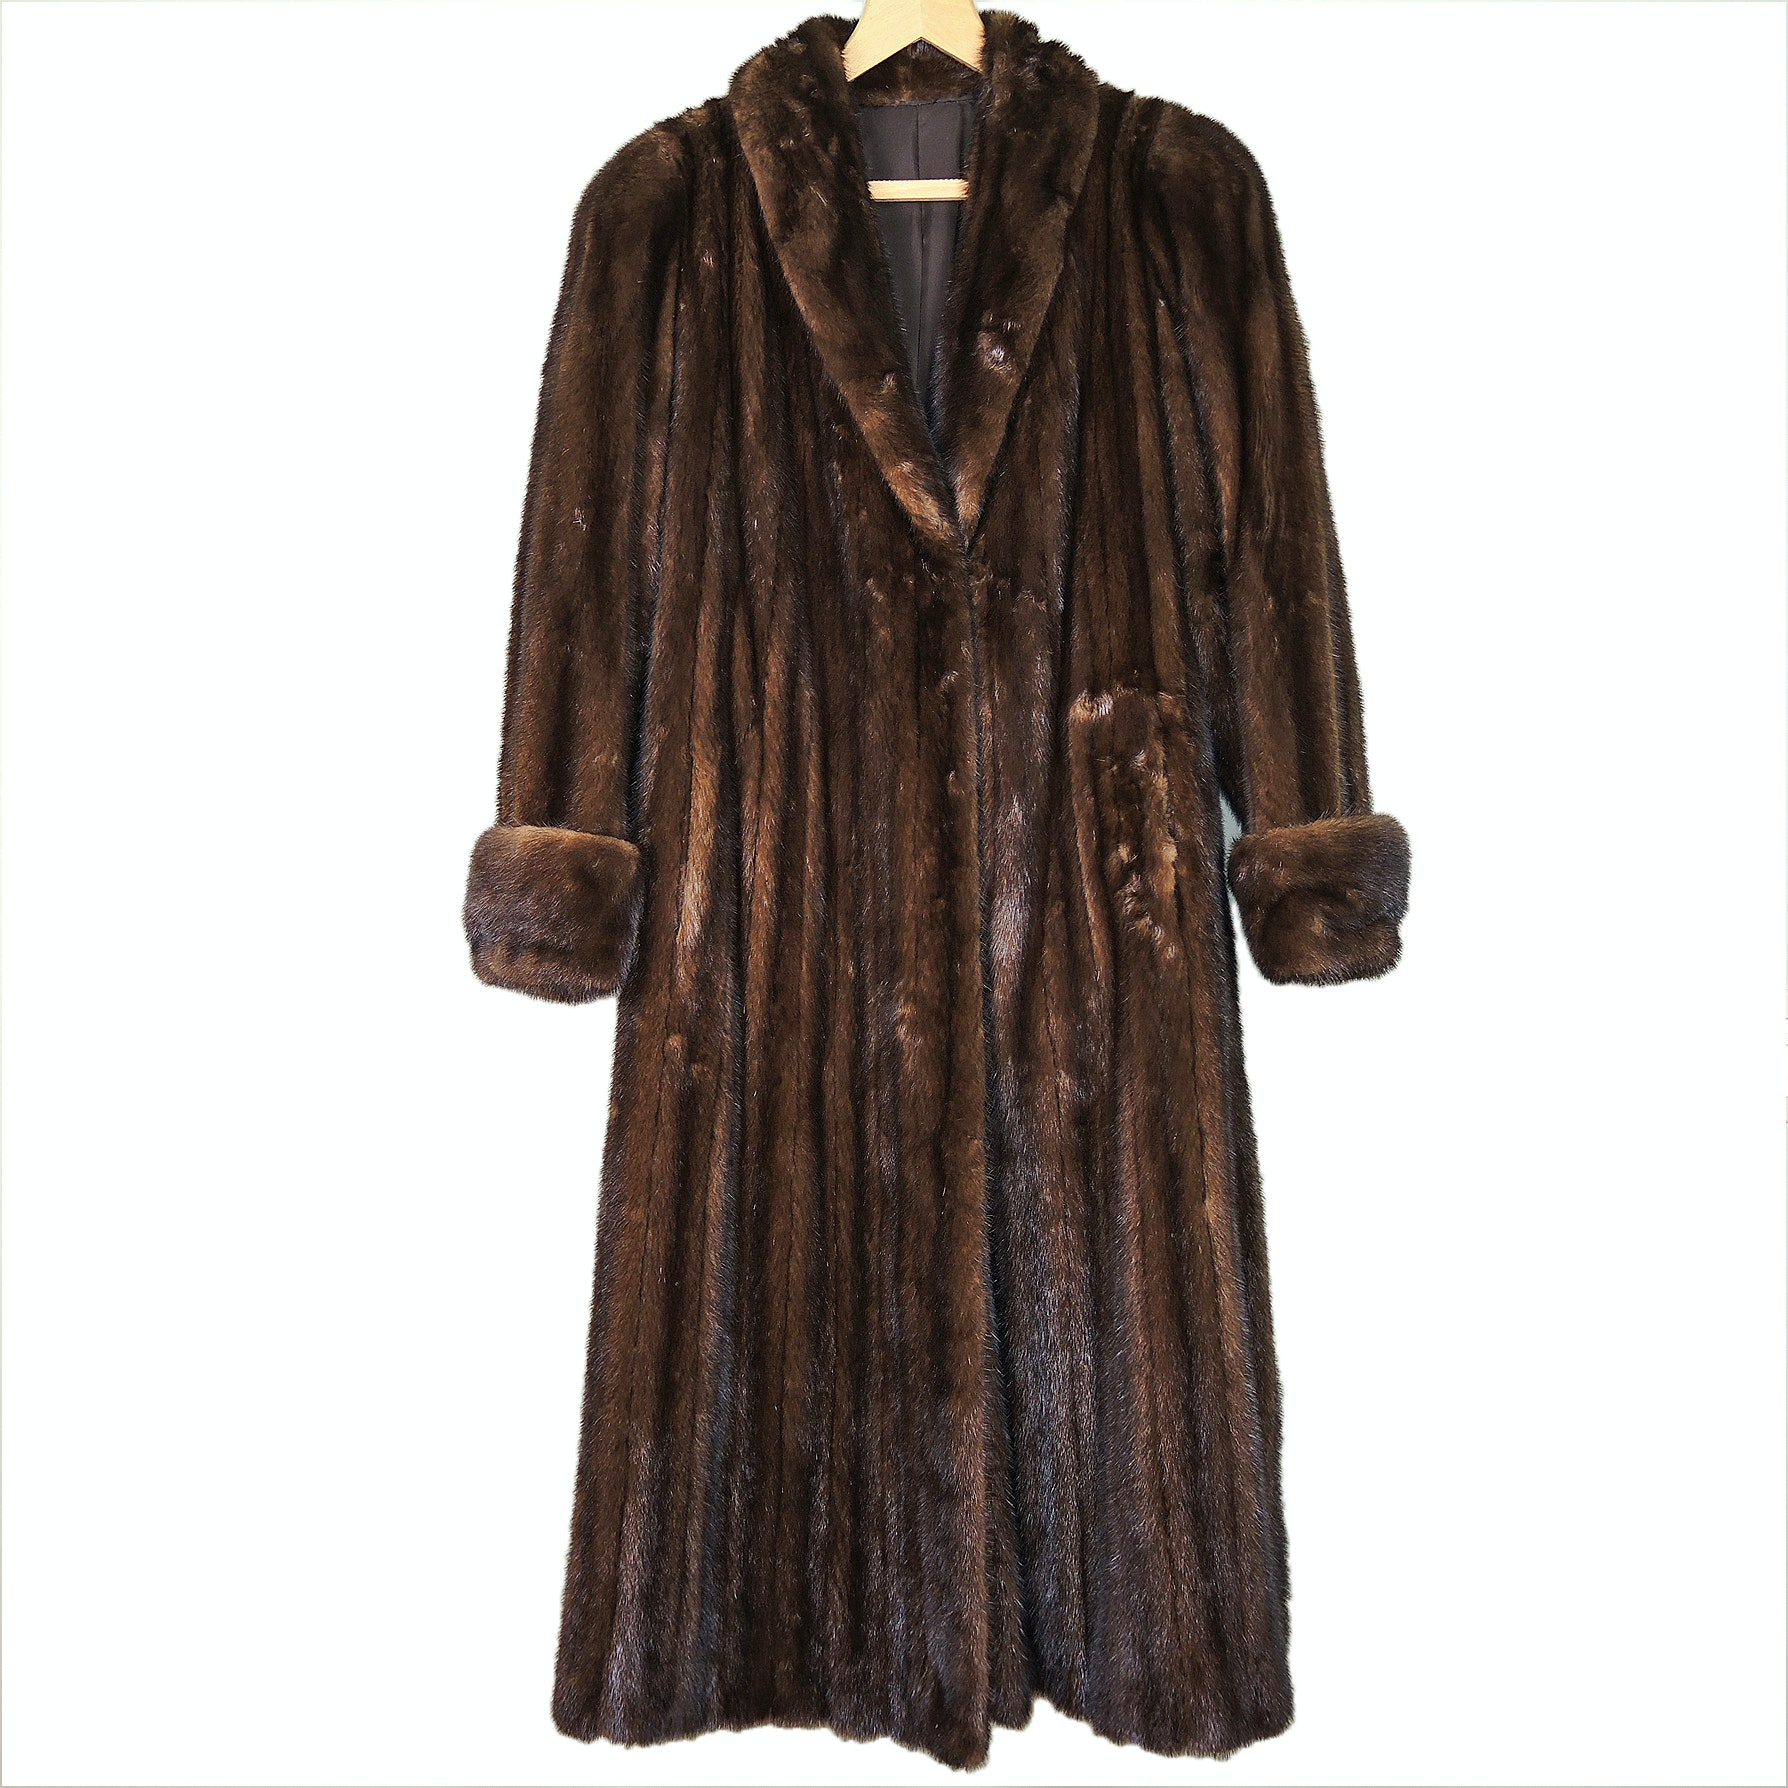 Full-Length Brown Mink Fur Coat